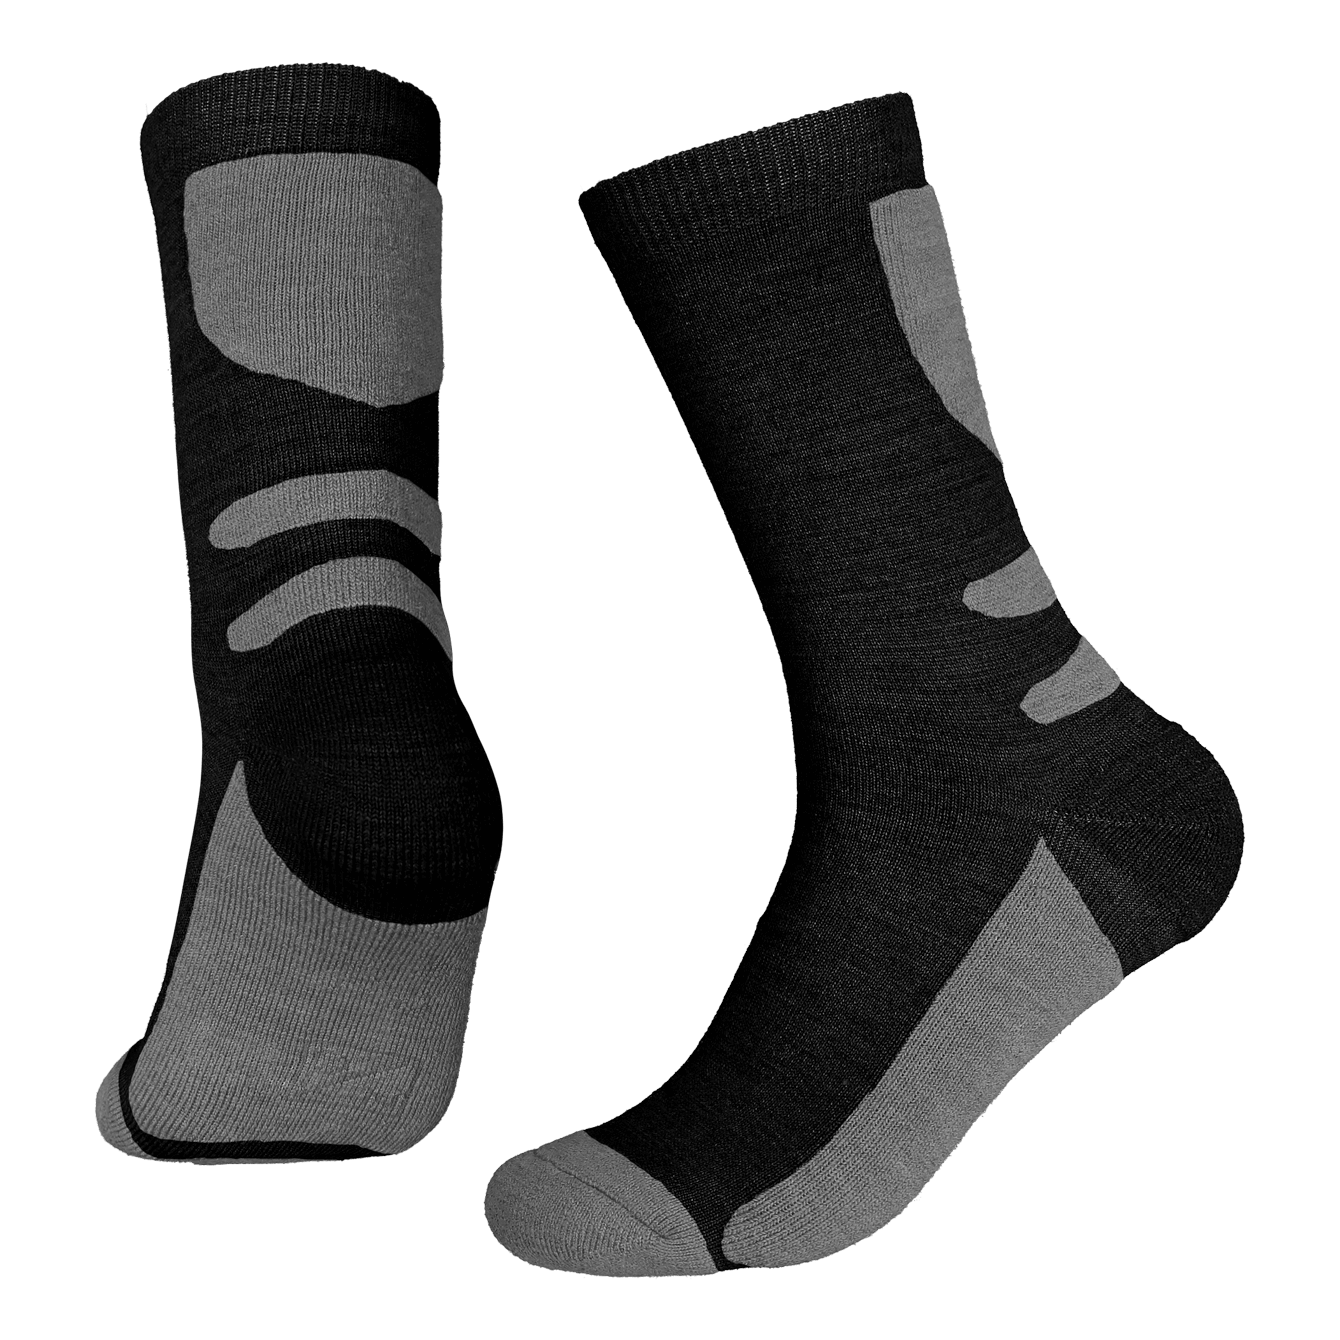 North Outdoor - Merino 70 Pro Socks Basics - Weekendbee - sustainable sportswear